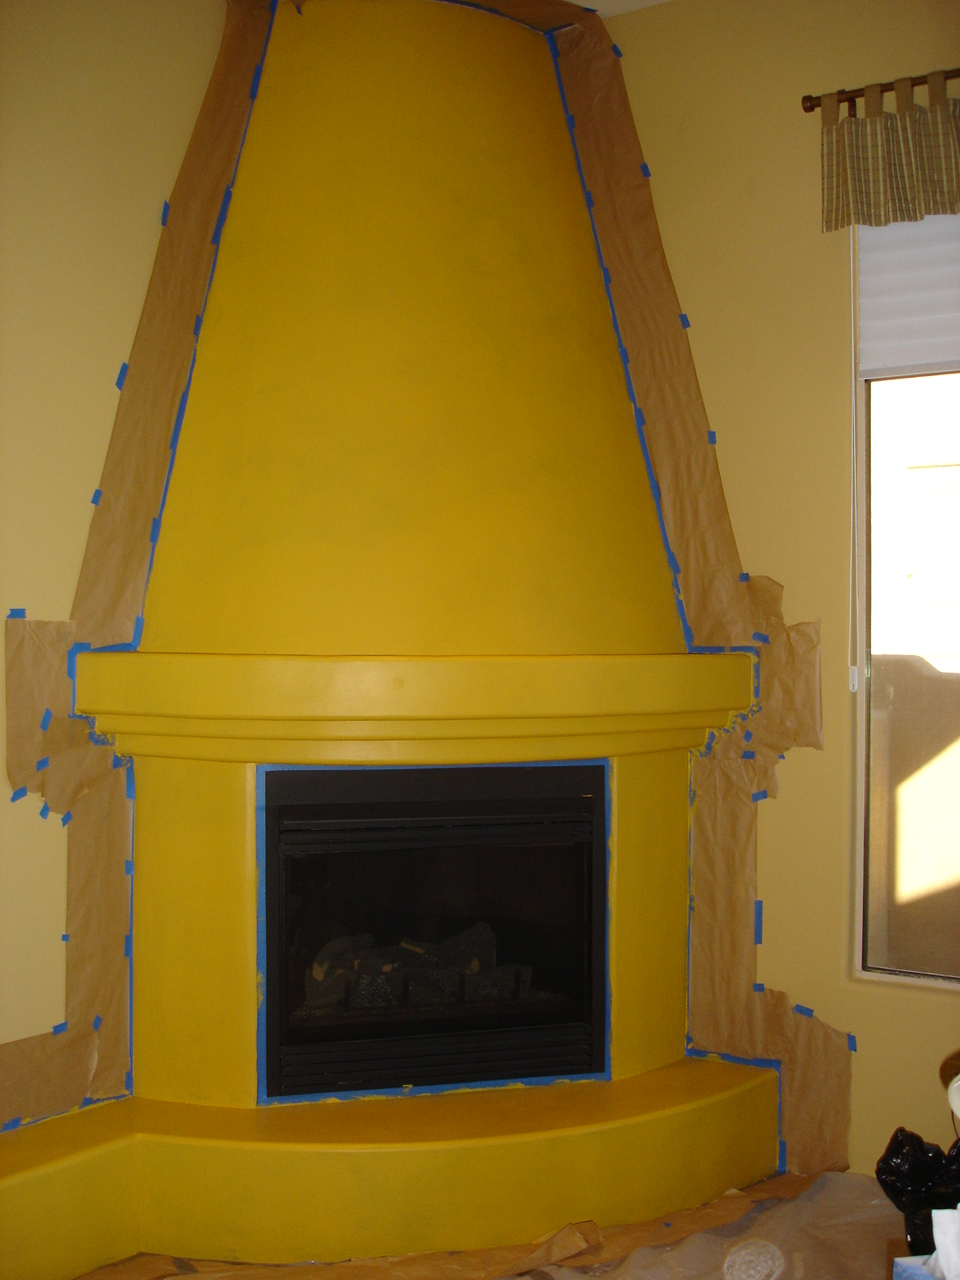 Decorative Painting - Faux Finishing and Murals in Arizona: Faux ...